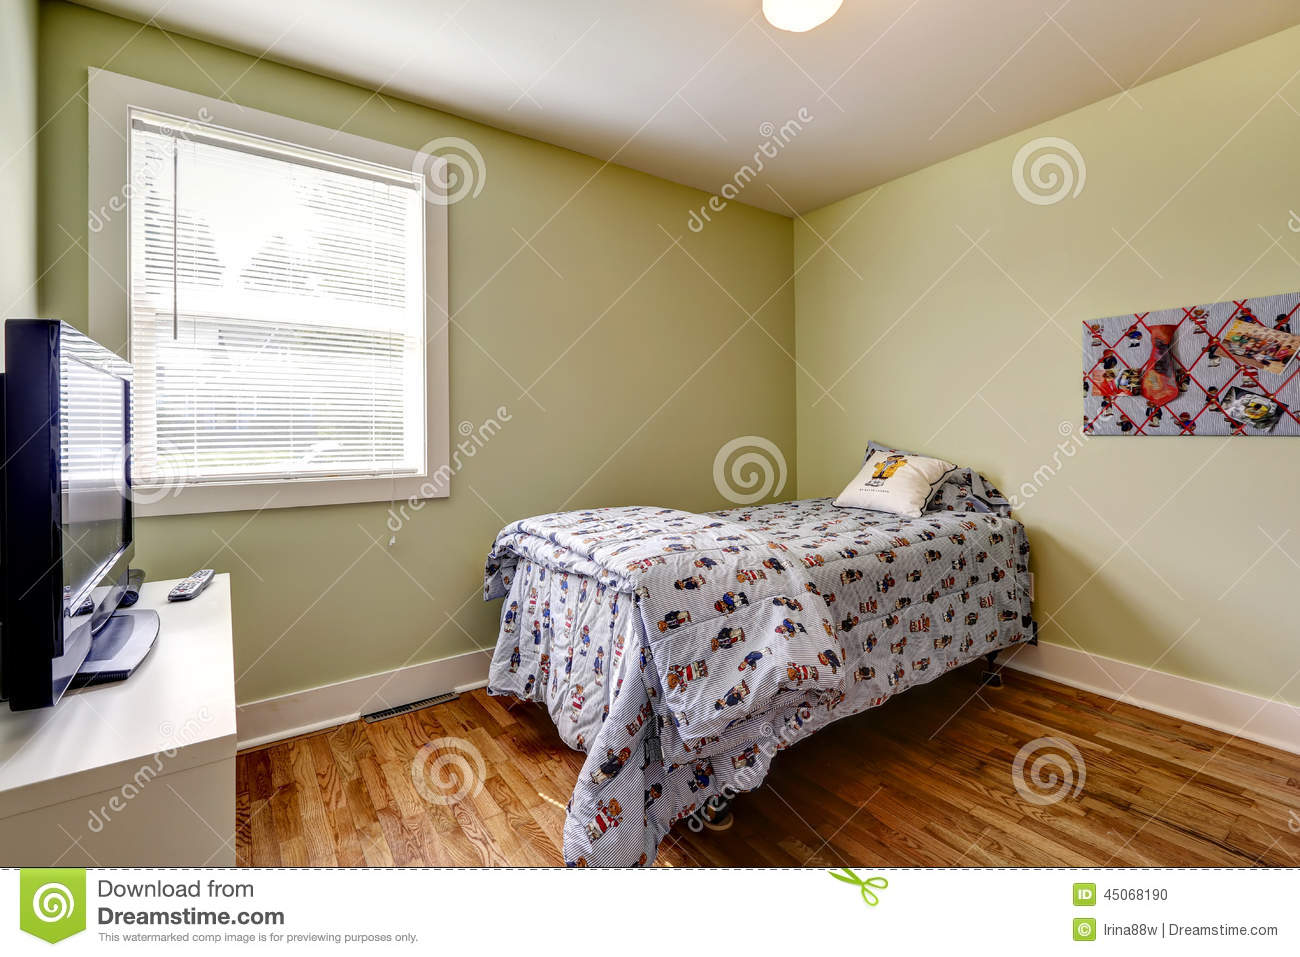 Simple Bedroom With Single Bed simple bedroom interior with single bed and tv stock photo - image